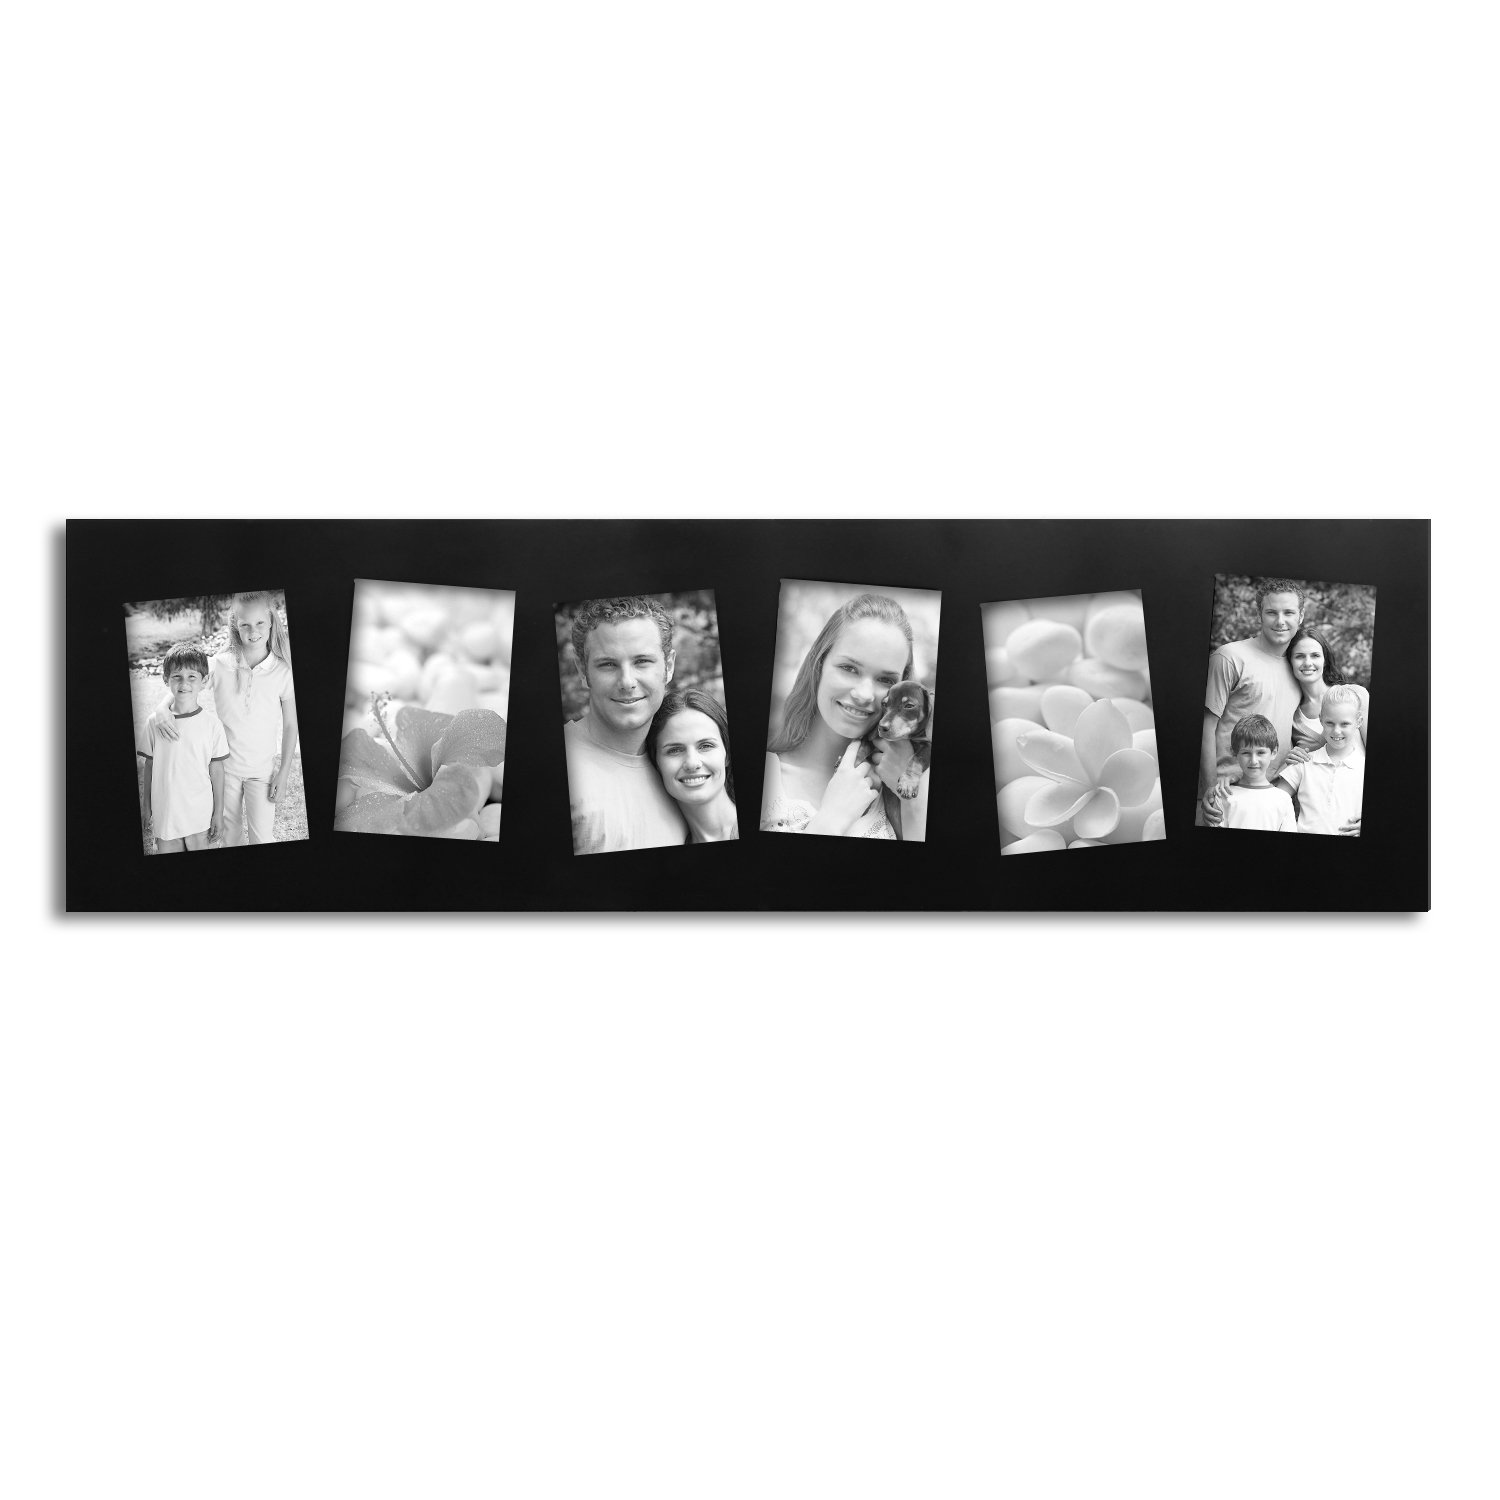 Adeco 6 Opening 4x6 Tilted Black Wood Wall Collage Picture Photo